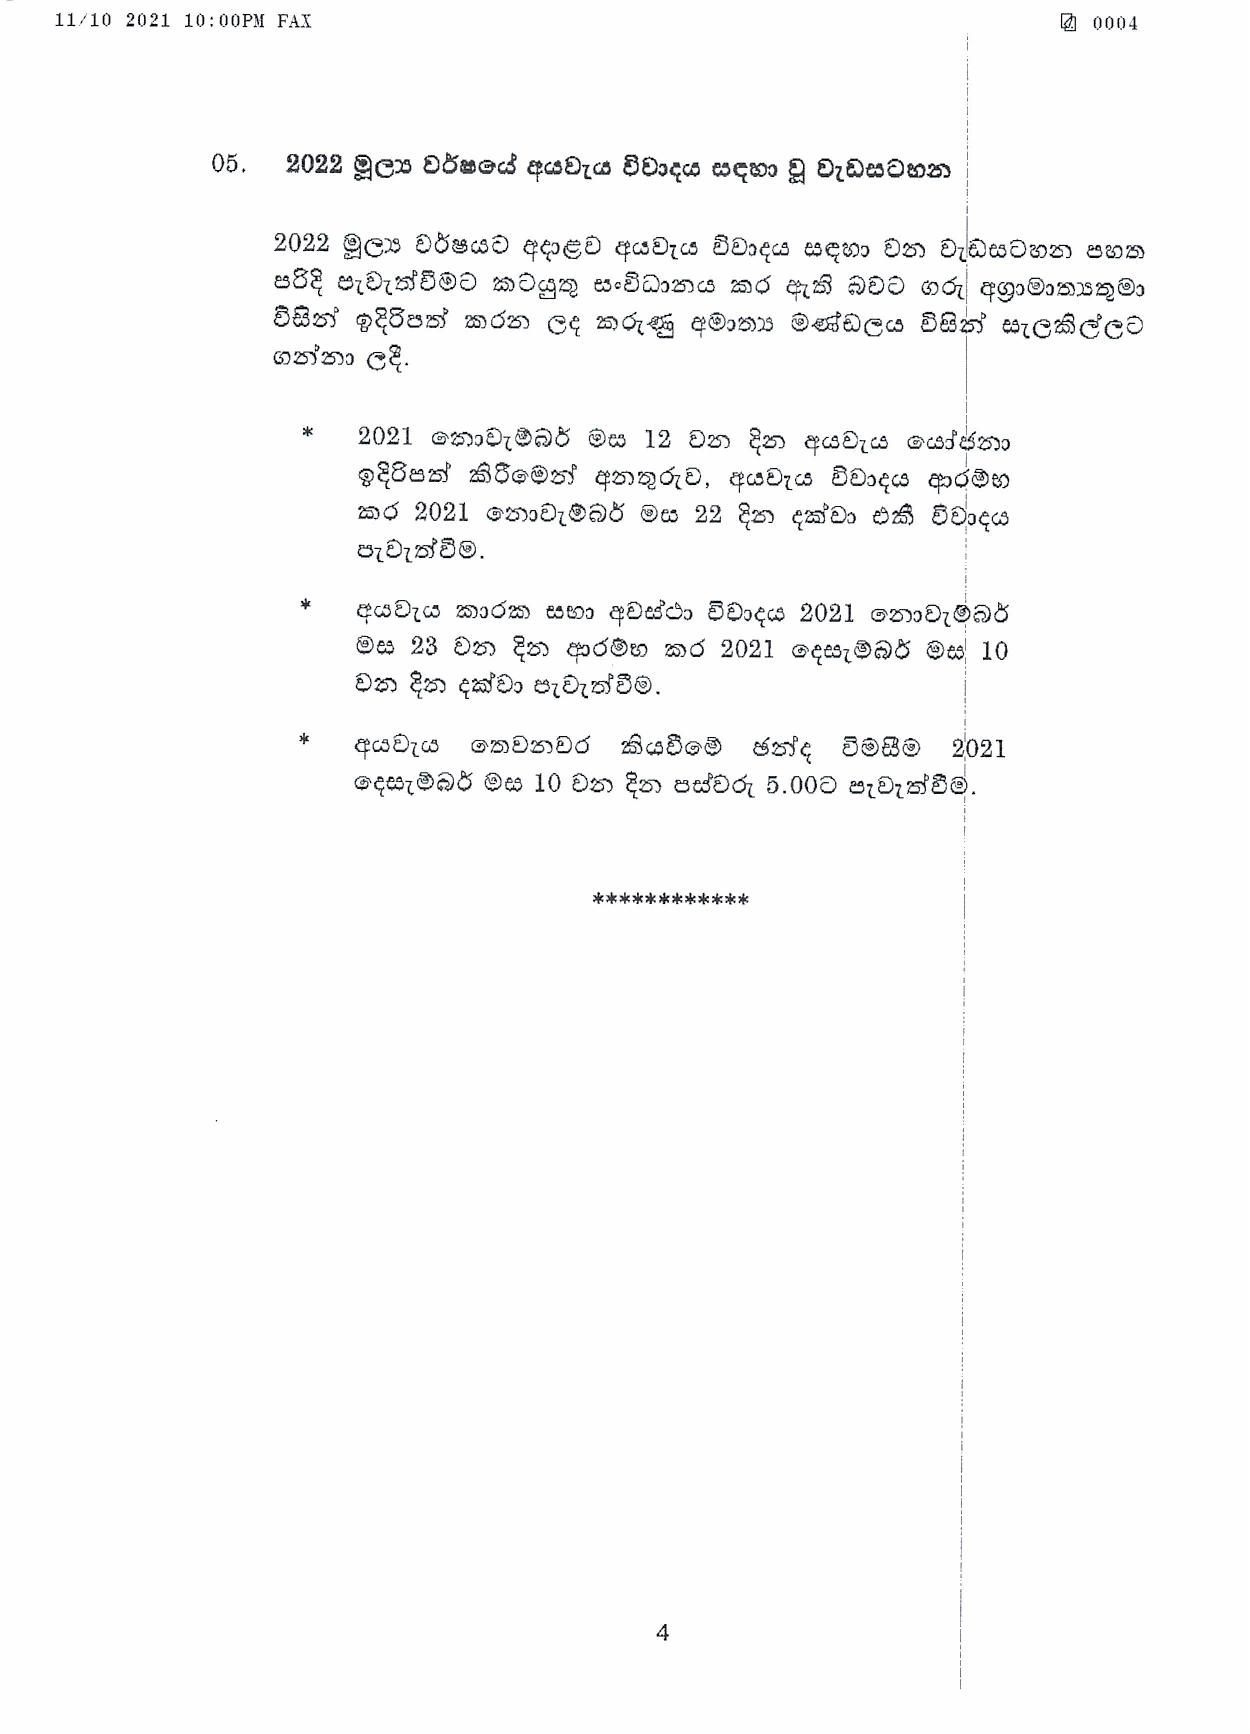 Cabinet Decisions on 11.10.2021 page 004